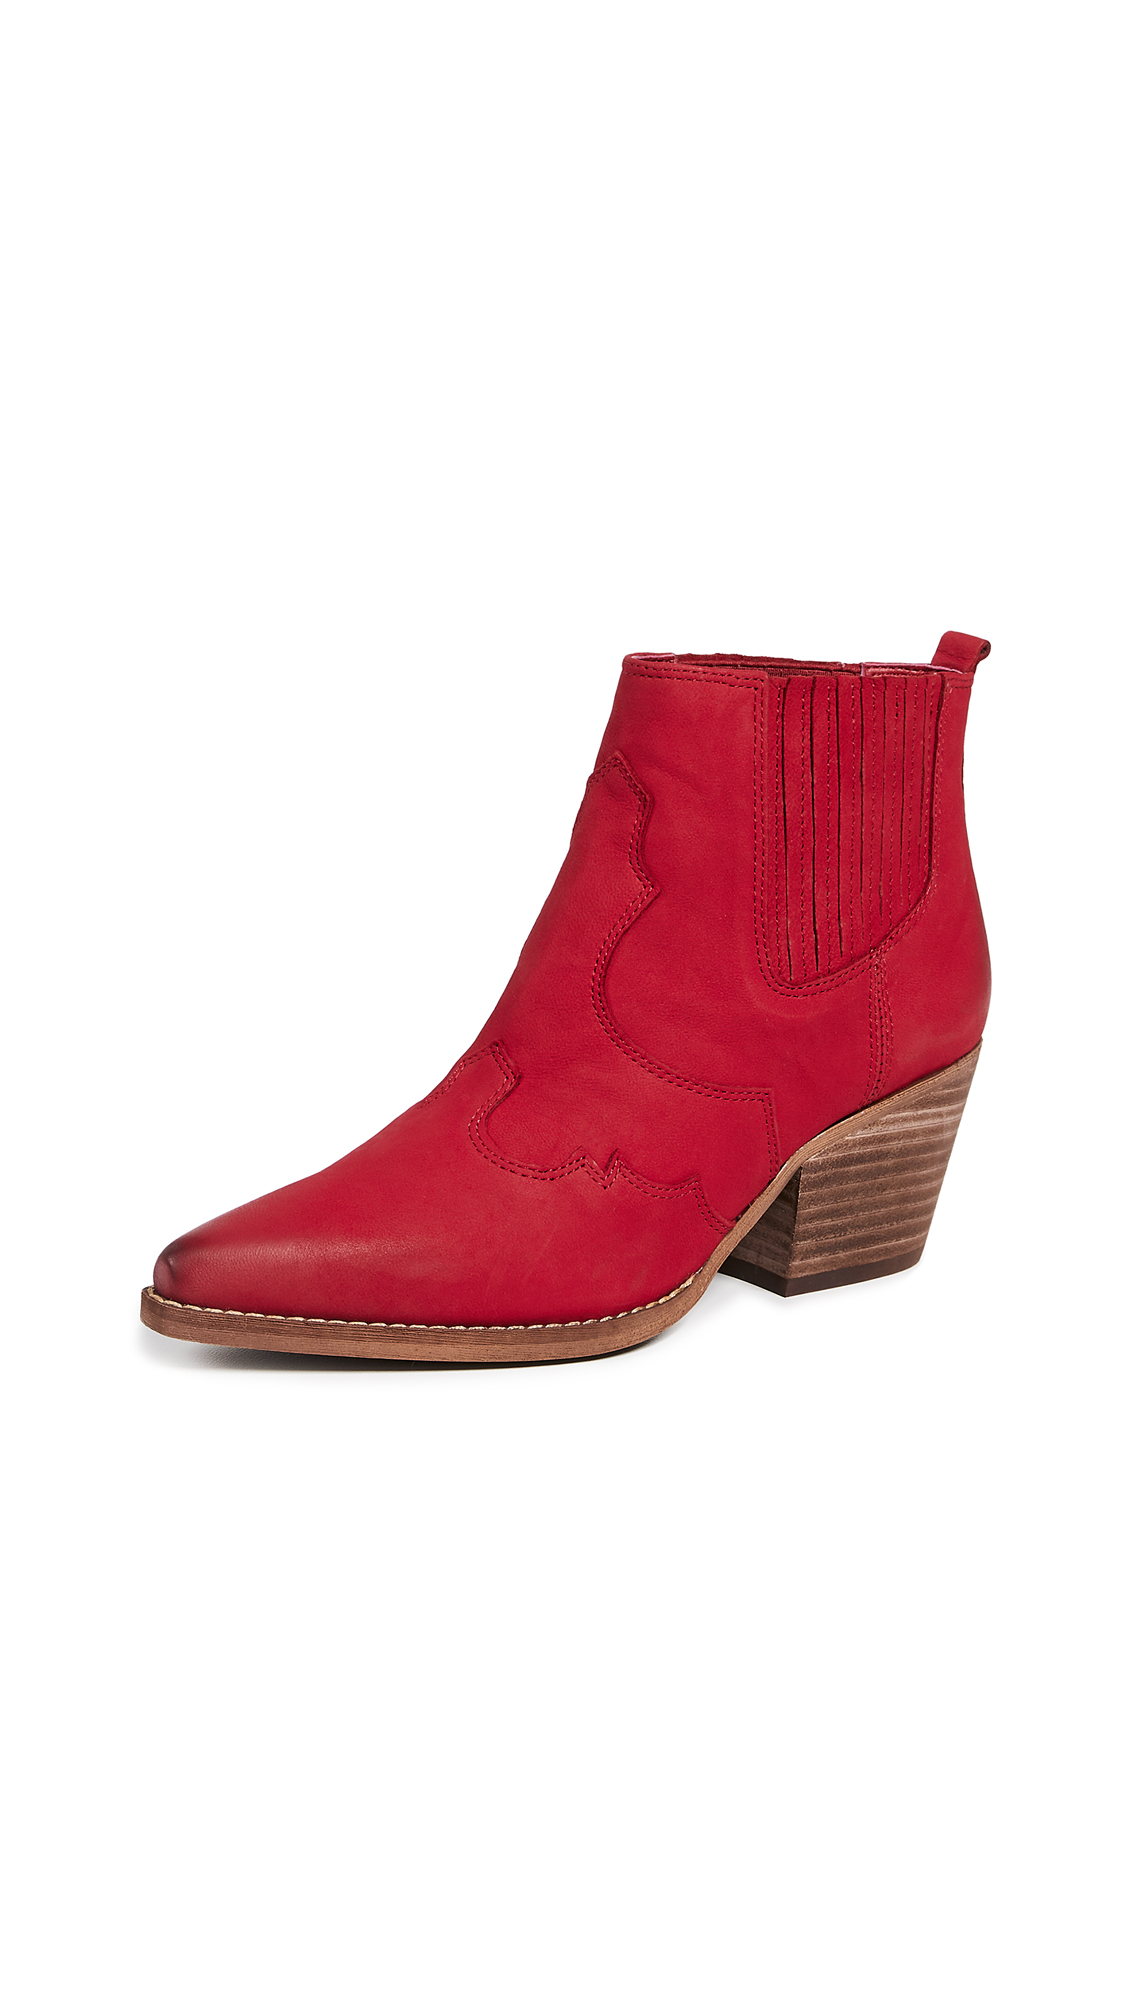 Sam Edelman Winona Booties - Deep Red